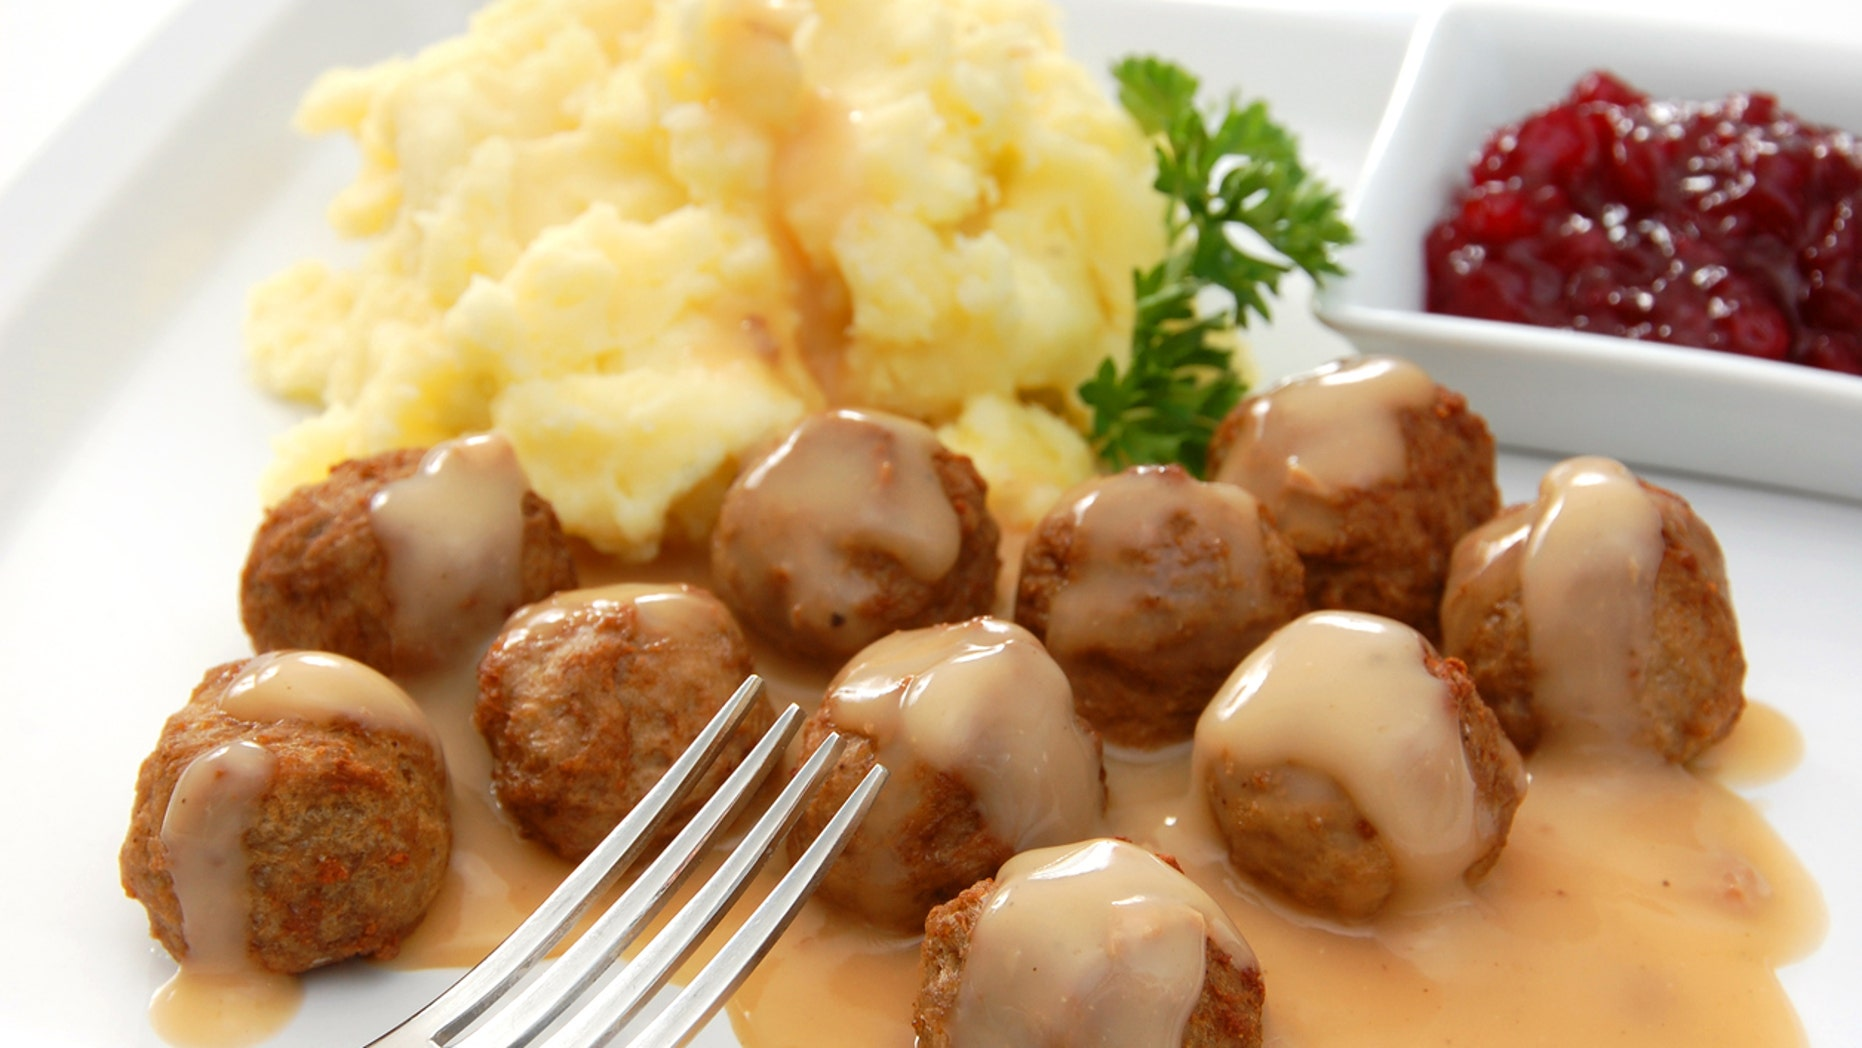 """Swedish meatballs served with the traditional accompaniments of gravy, mashed potatoes, and lingonberry sauce.More images from this series:"""